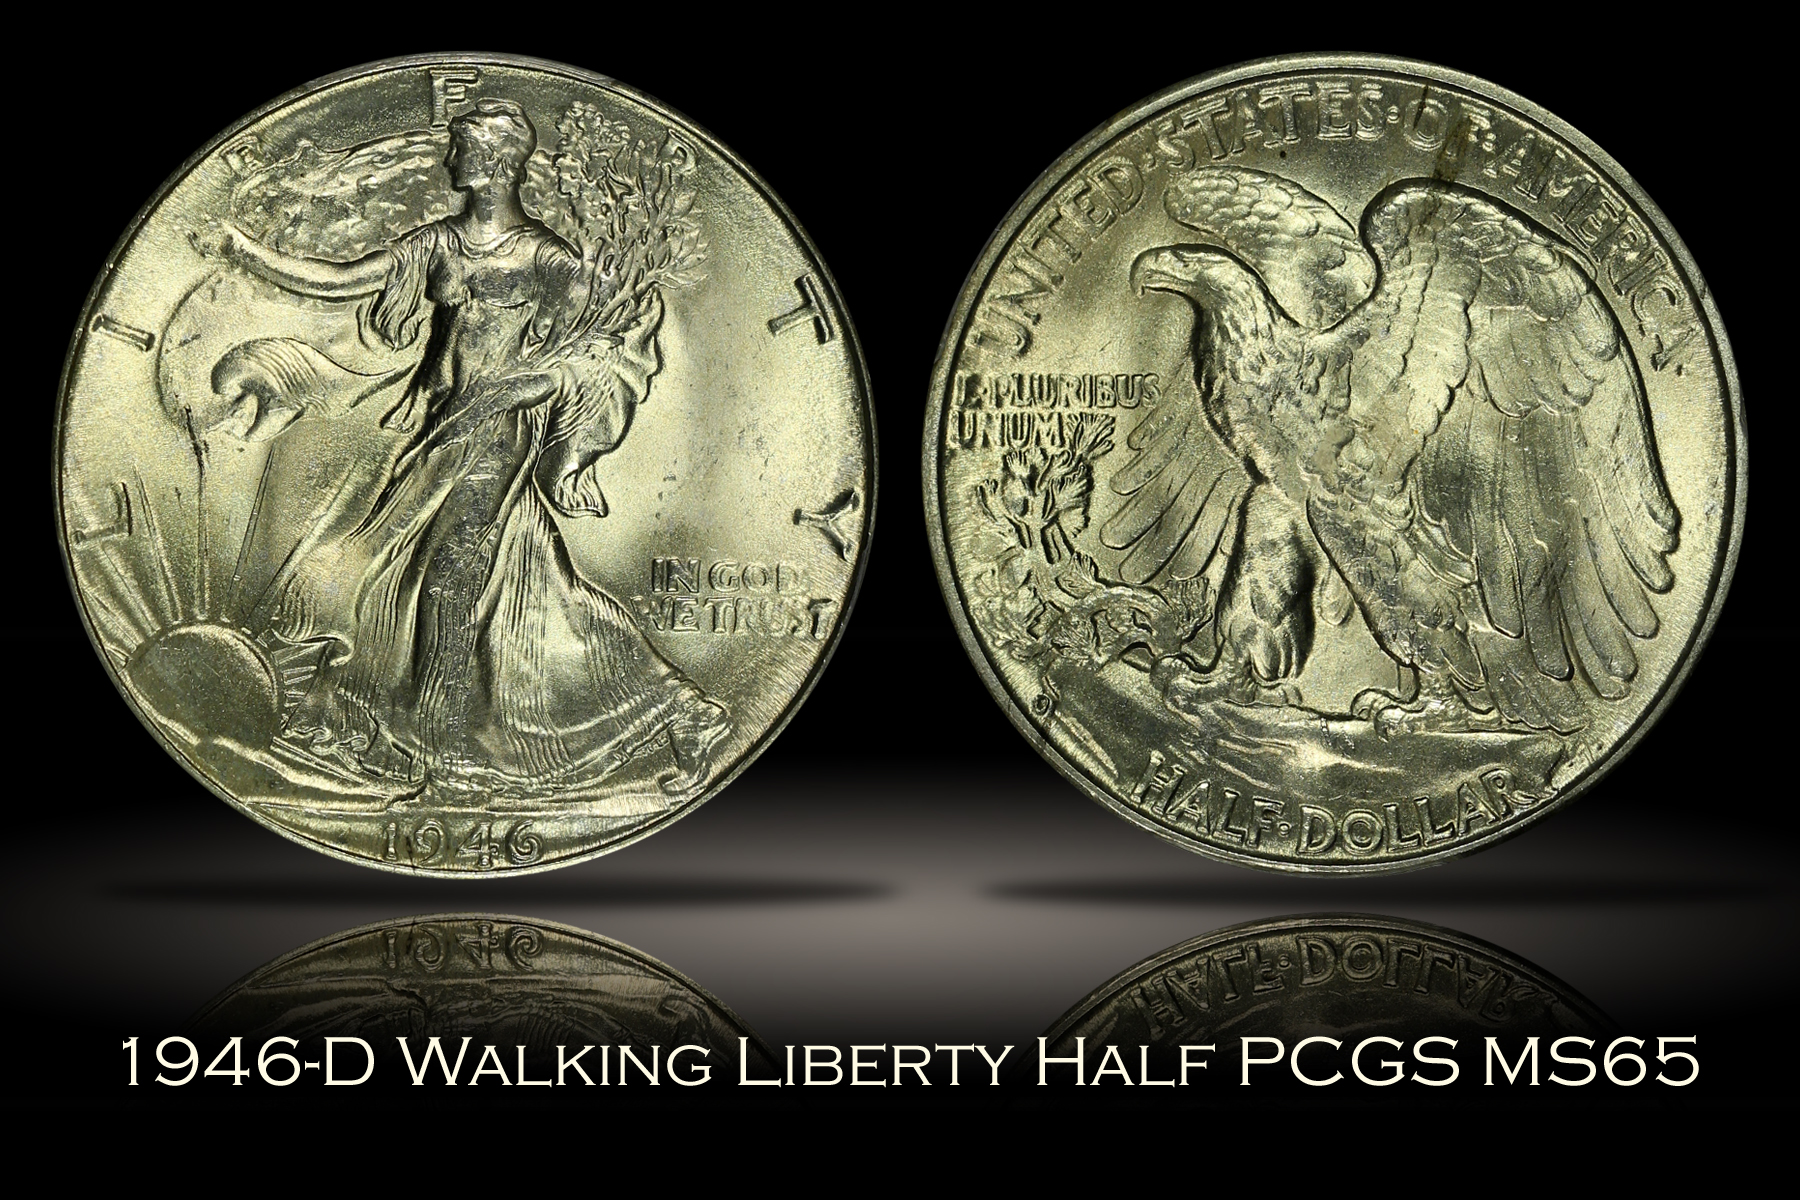 1946-D Walking Liberty Half PCGS MS65